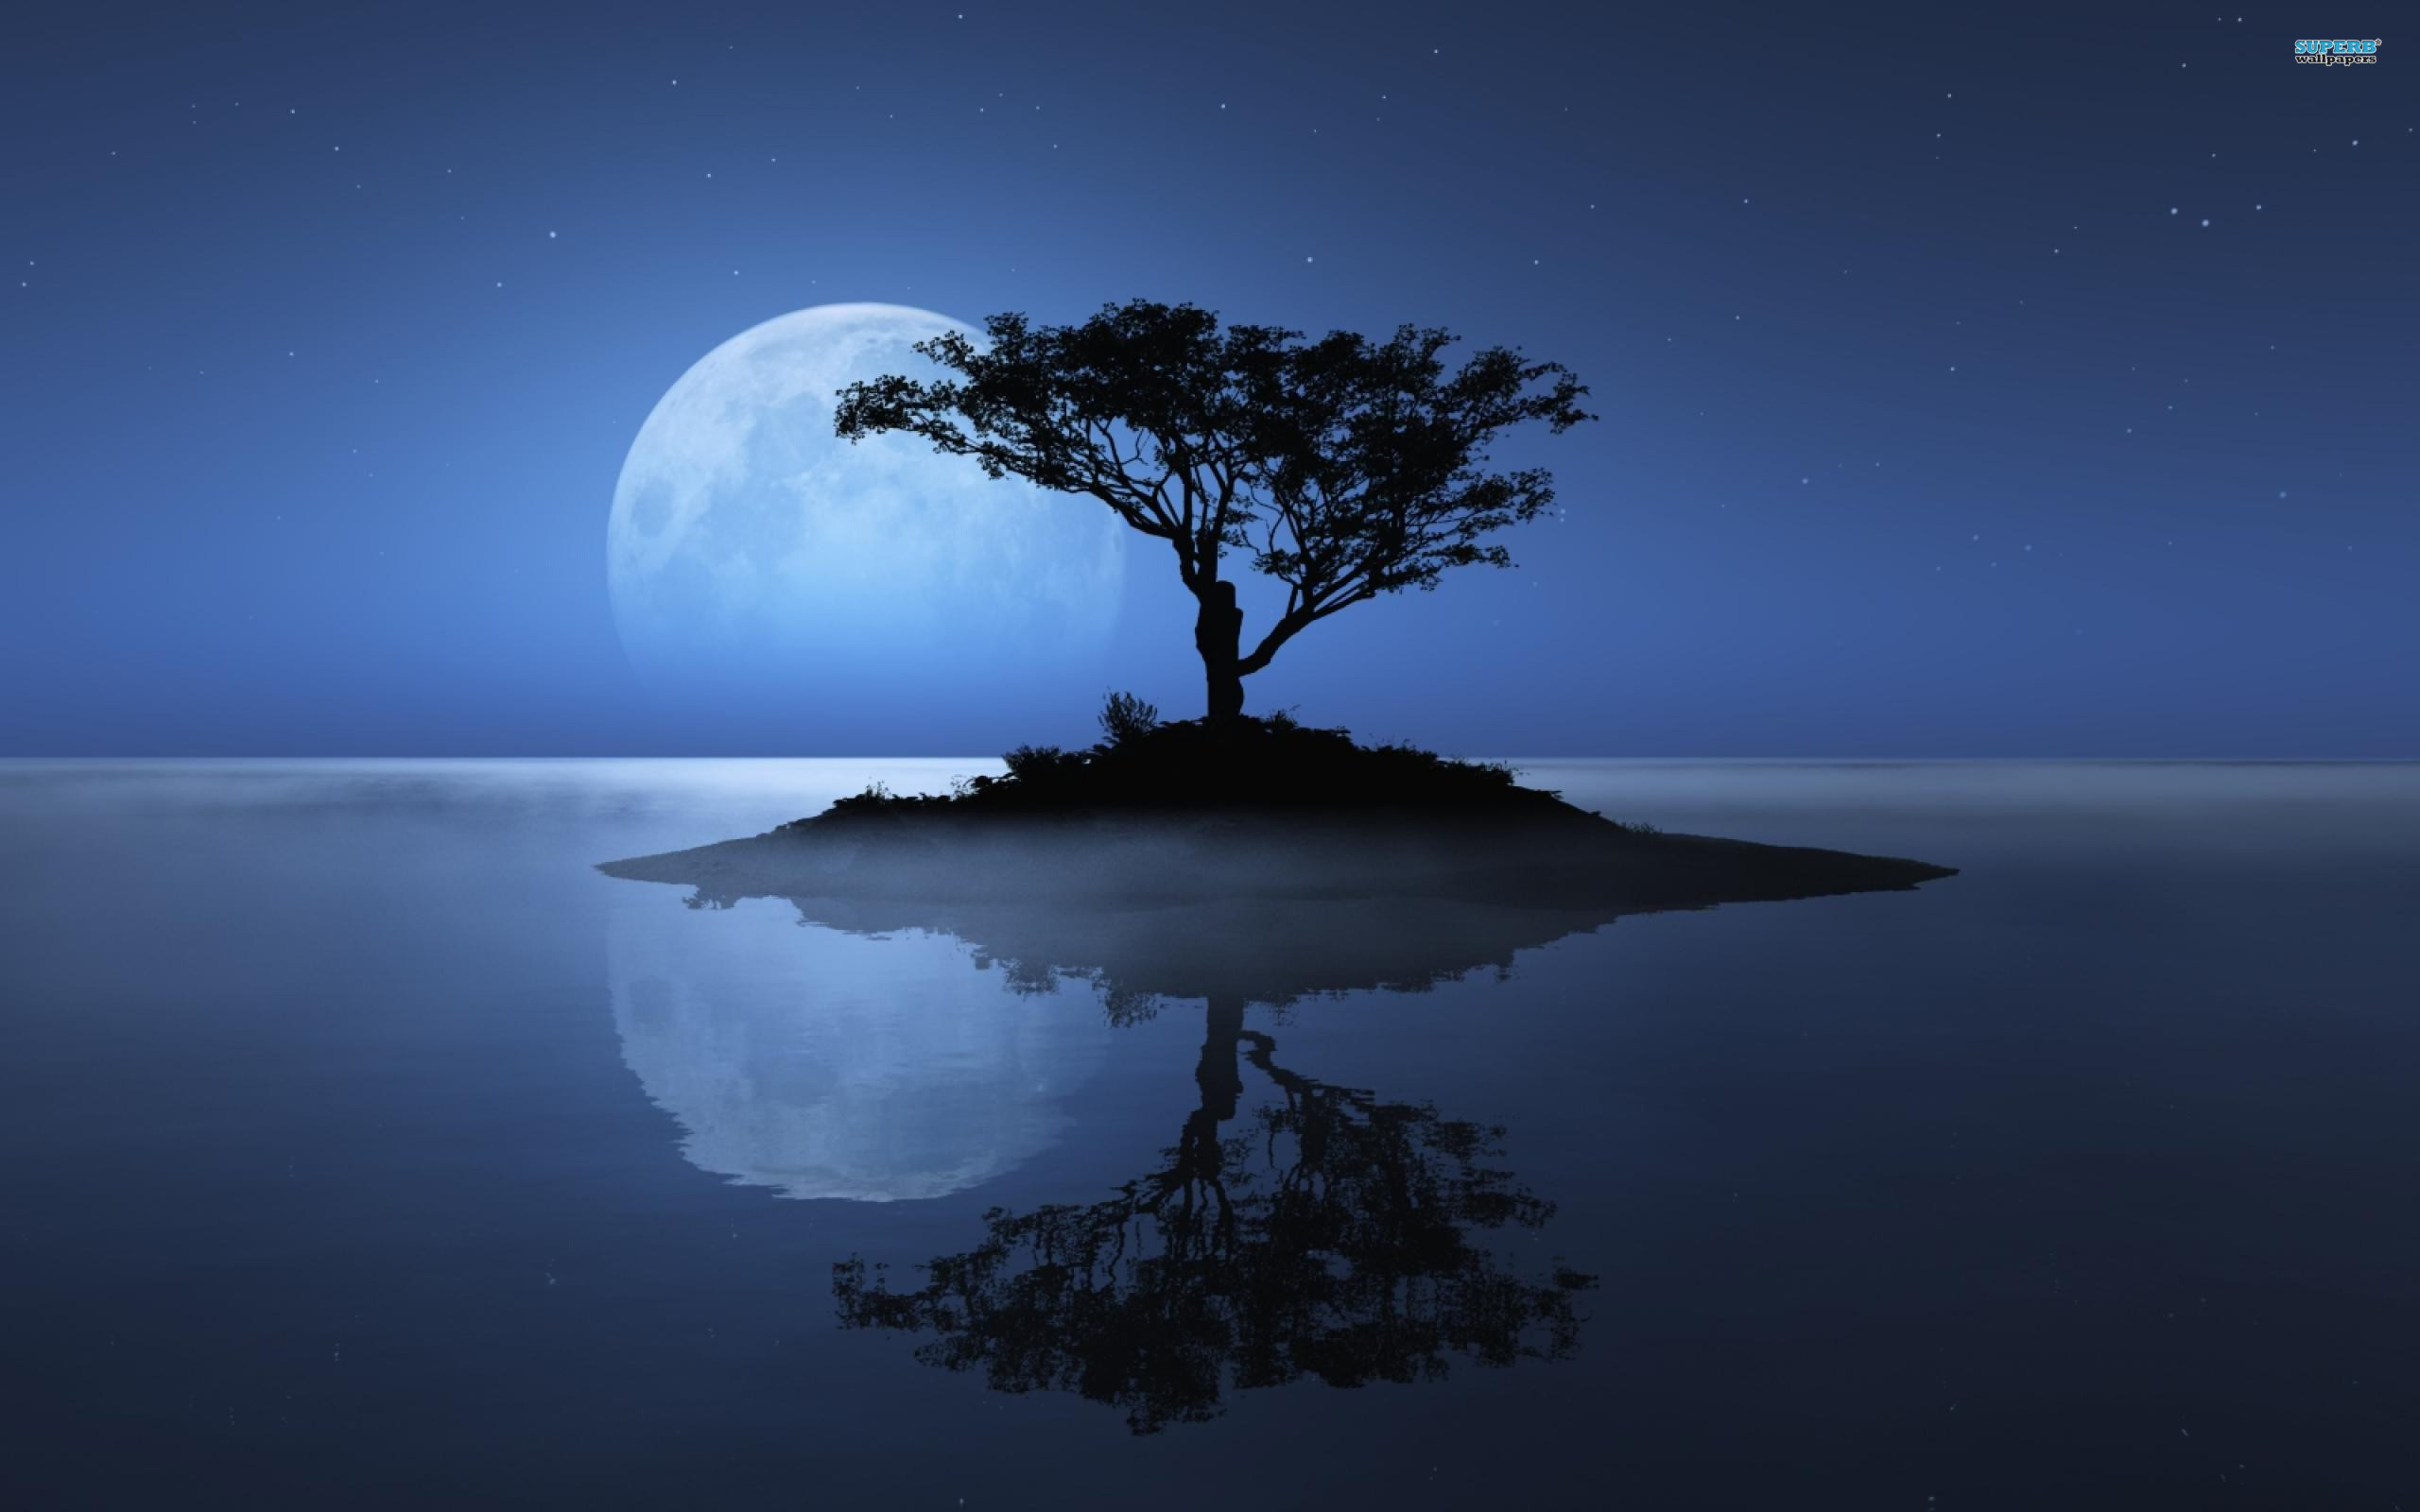 moon shadow on river wallpaper download